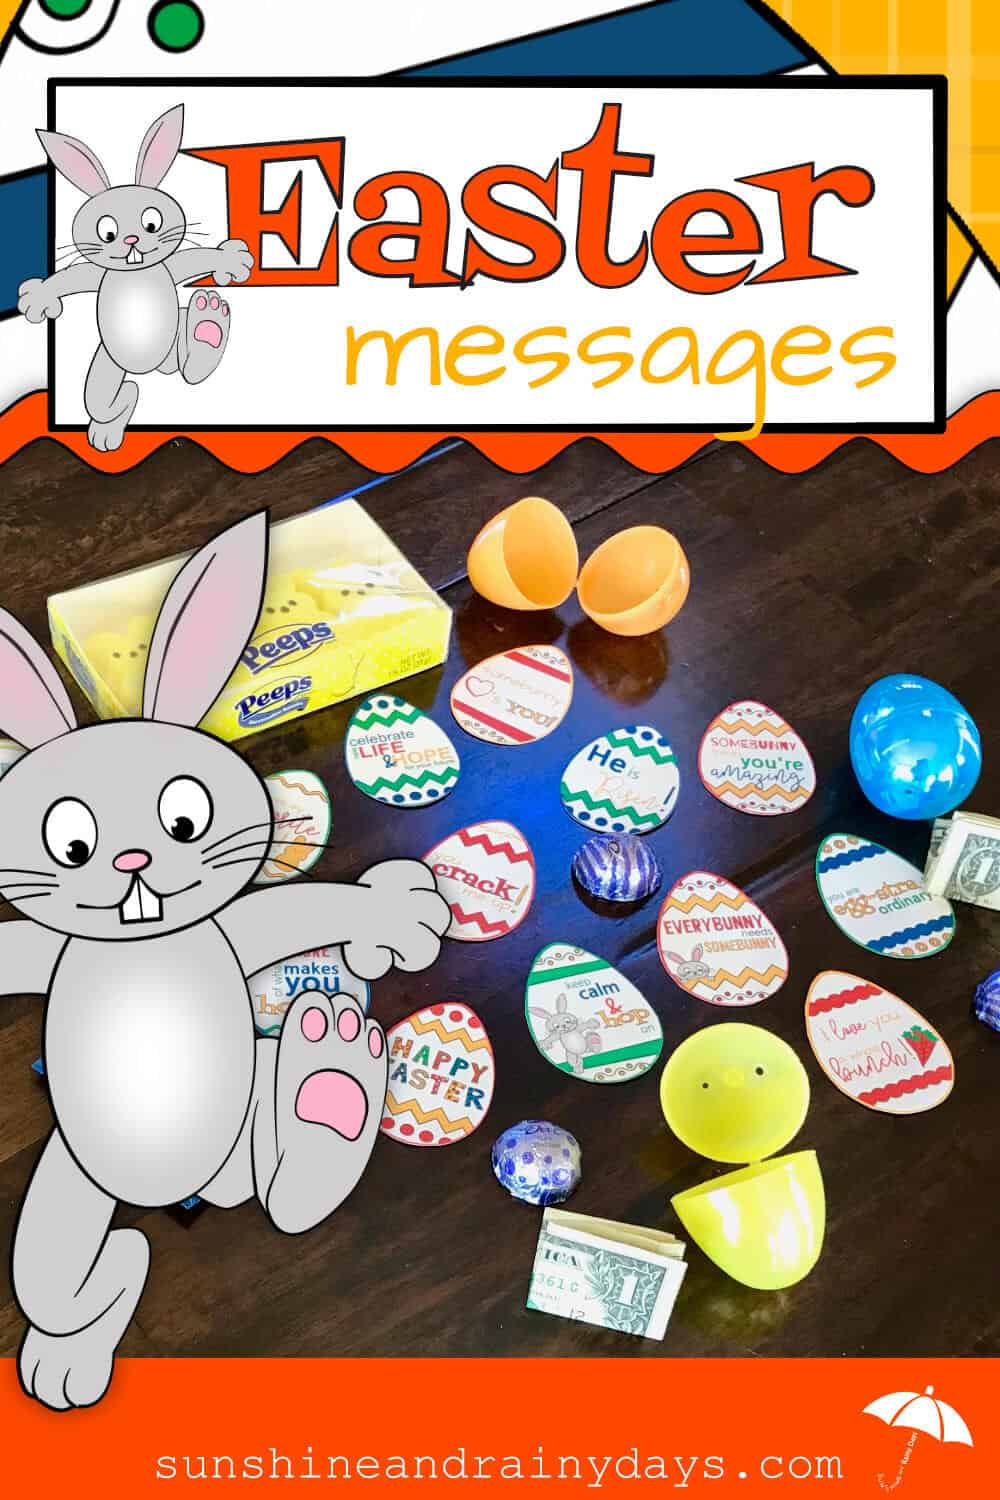 Brighten your Easter Egg Hunt this year with Inspirational And Punny Easter Messages! Easter Egg Hunt | Easter Egg Fillers | Punny Easter | Easter Printable | #easteregg #easteregghunt #SARD